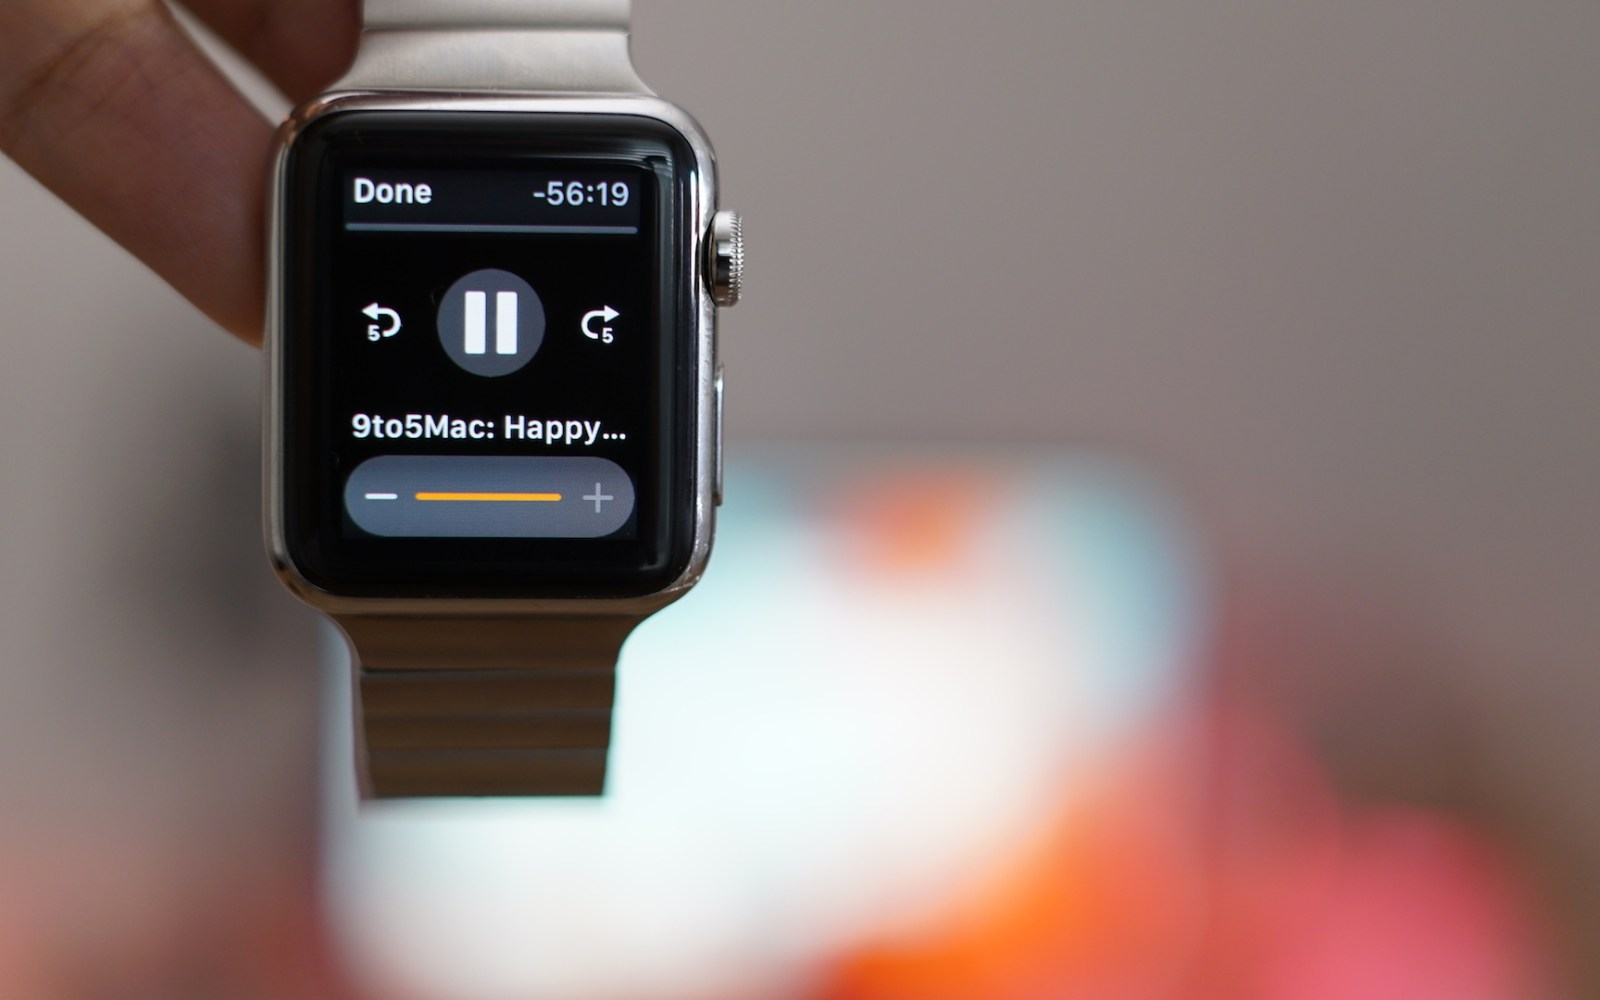 WatchPlayer: Play podcast episodes directly from the Apple Watch speaker [Video]